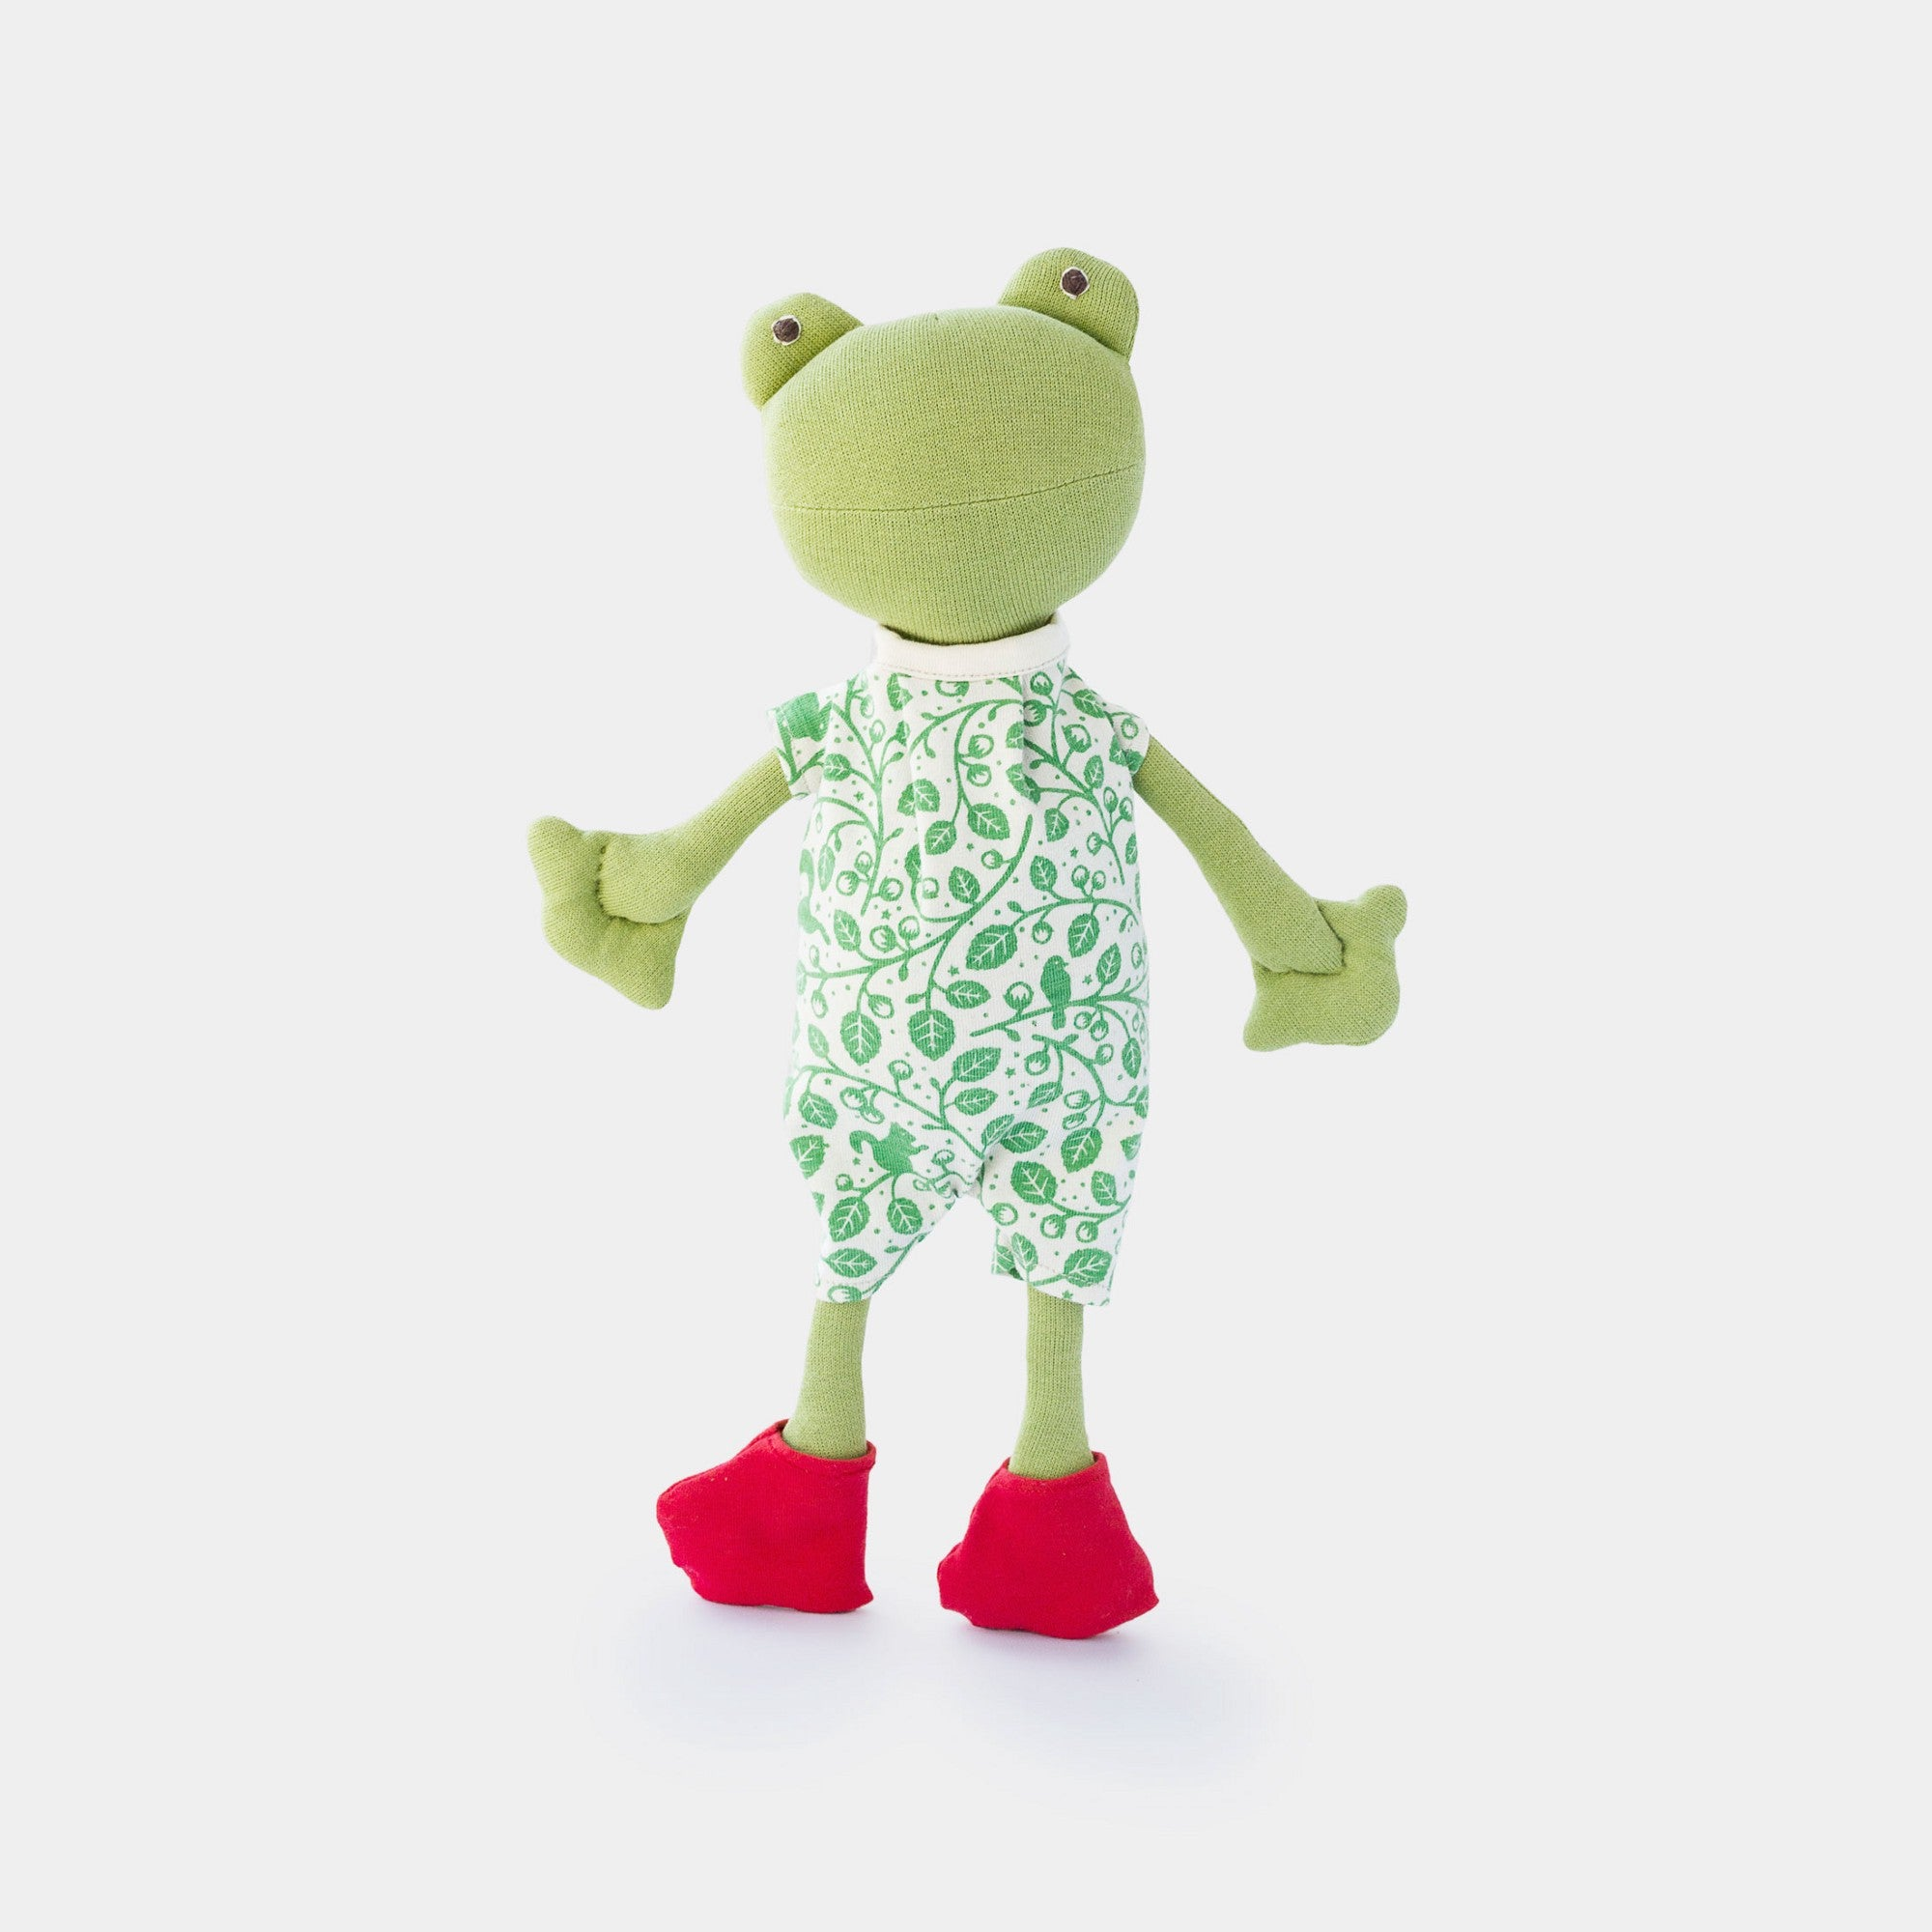 Ella Toad is available to purchase at maammo.com